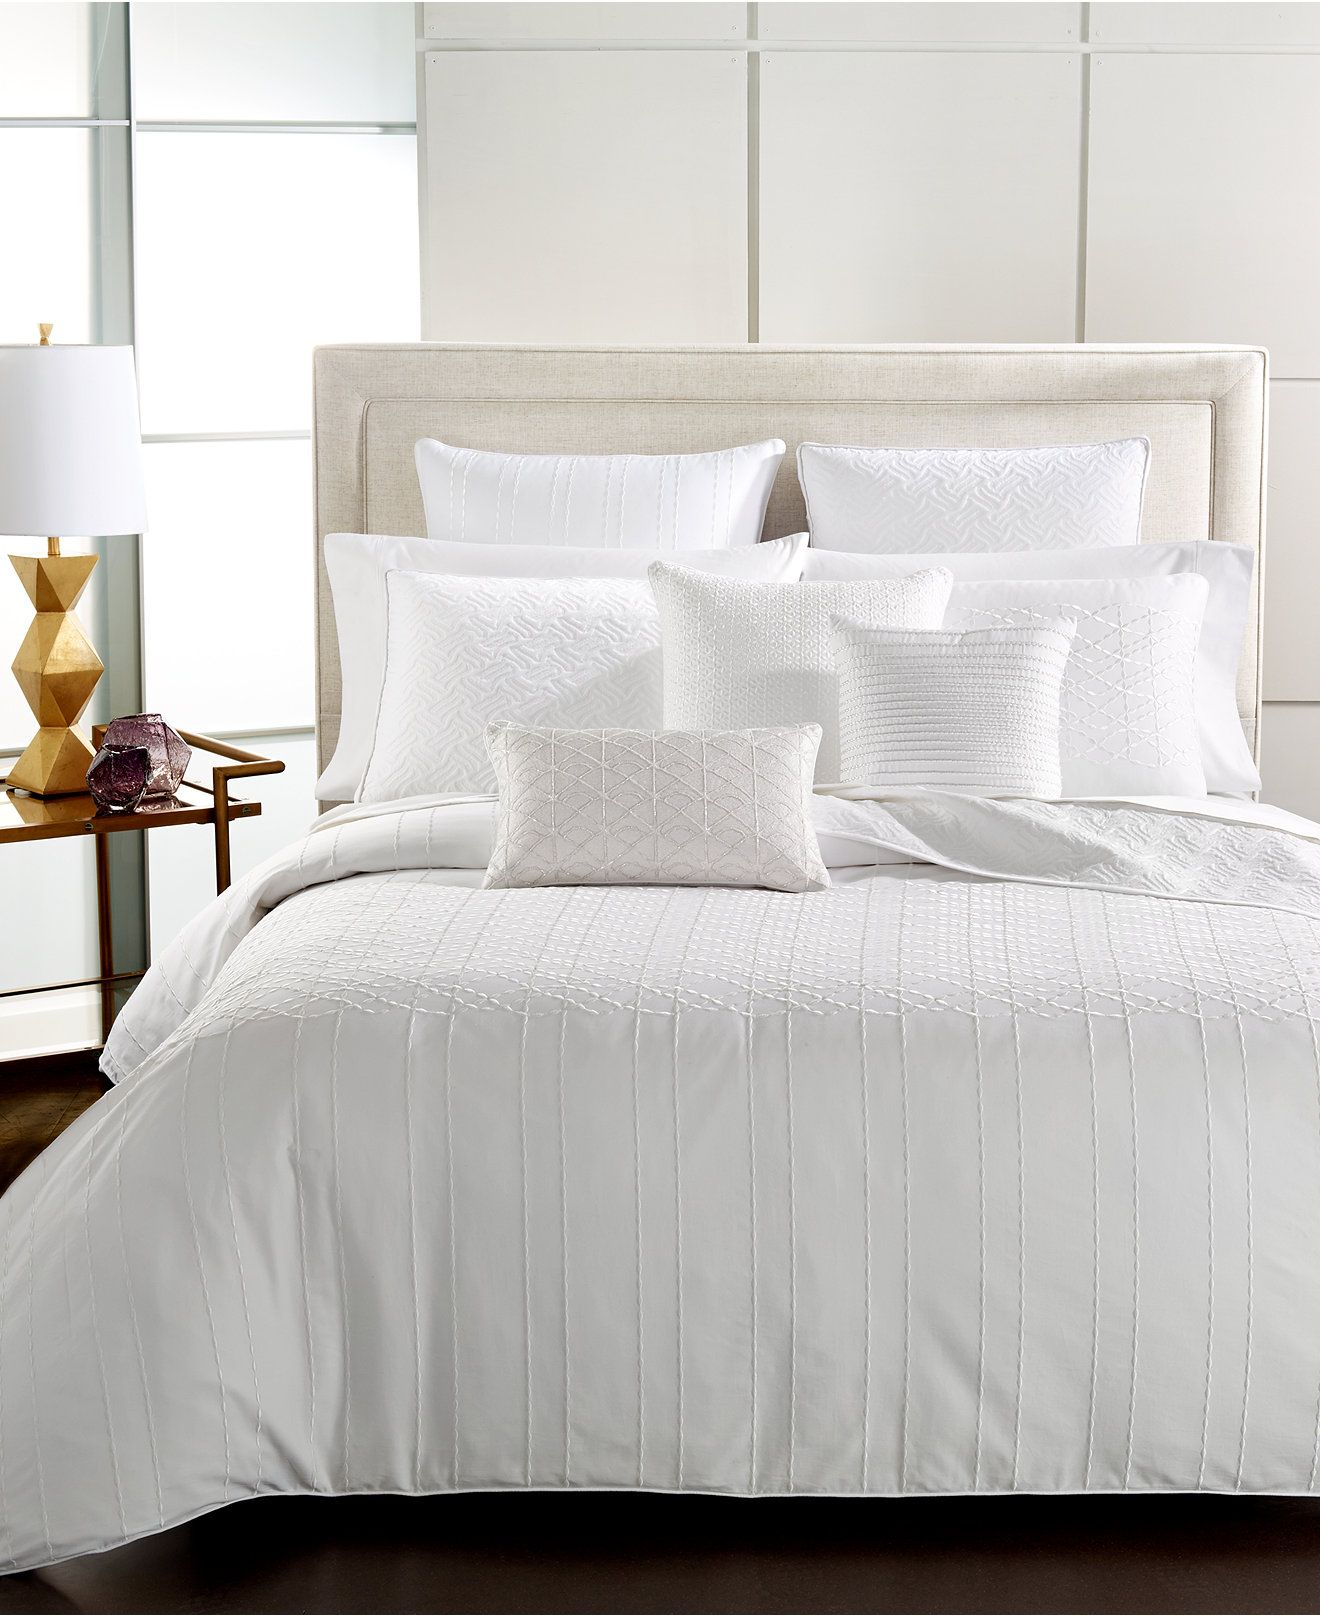 york bath new s pin collection bedding only collections set dimensions created comforter for bed king hotel at macy